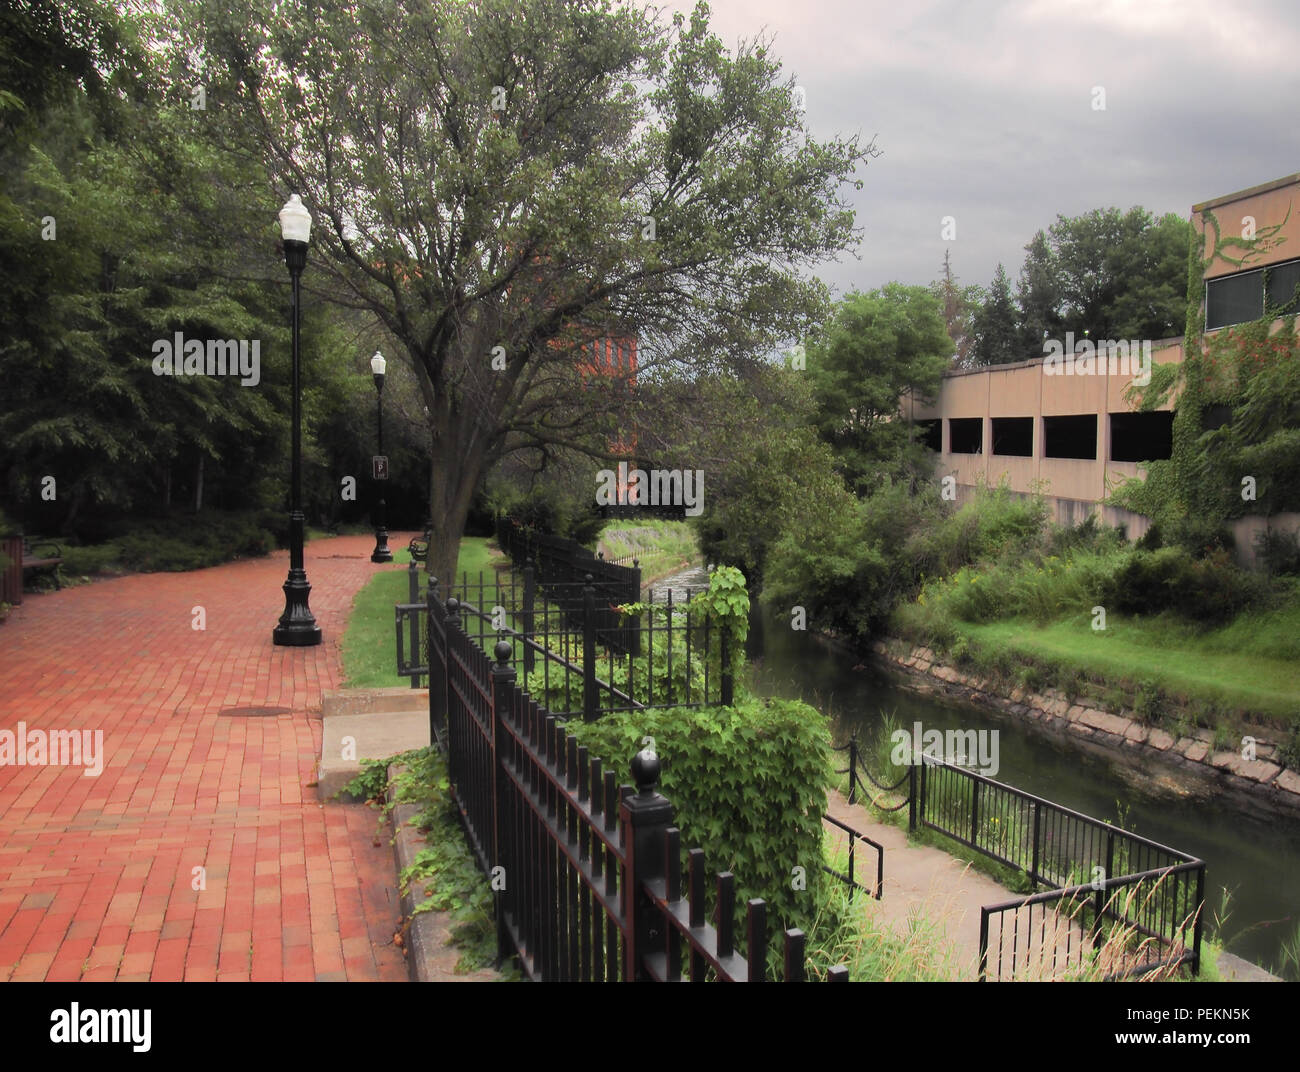 The Onondaga Creekwalk in Syracuse, New York. A public walking path running from Onondaga lake into downtown Syracuse, NY - Stock Image